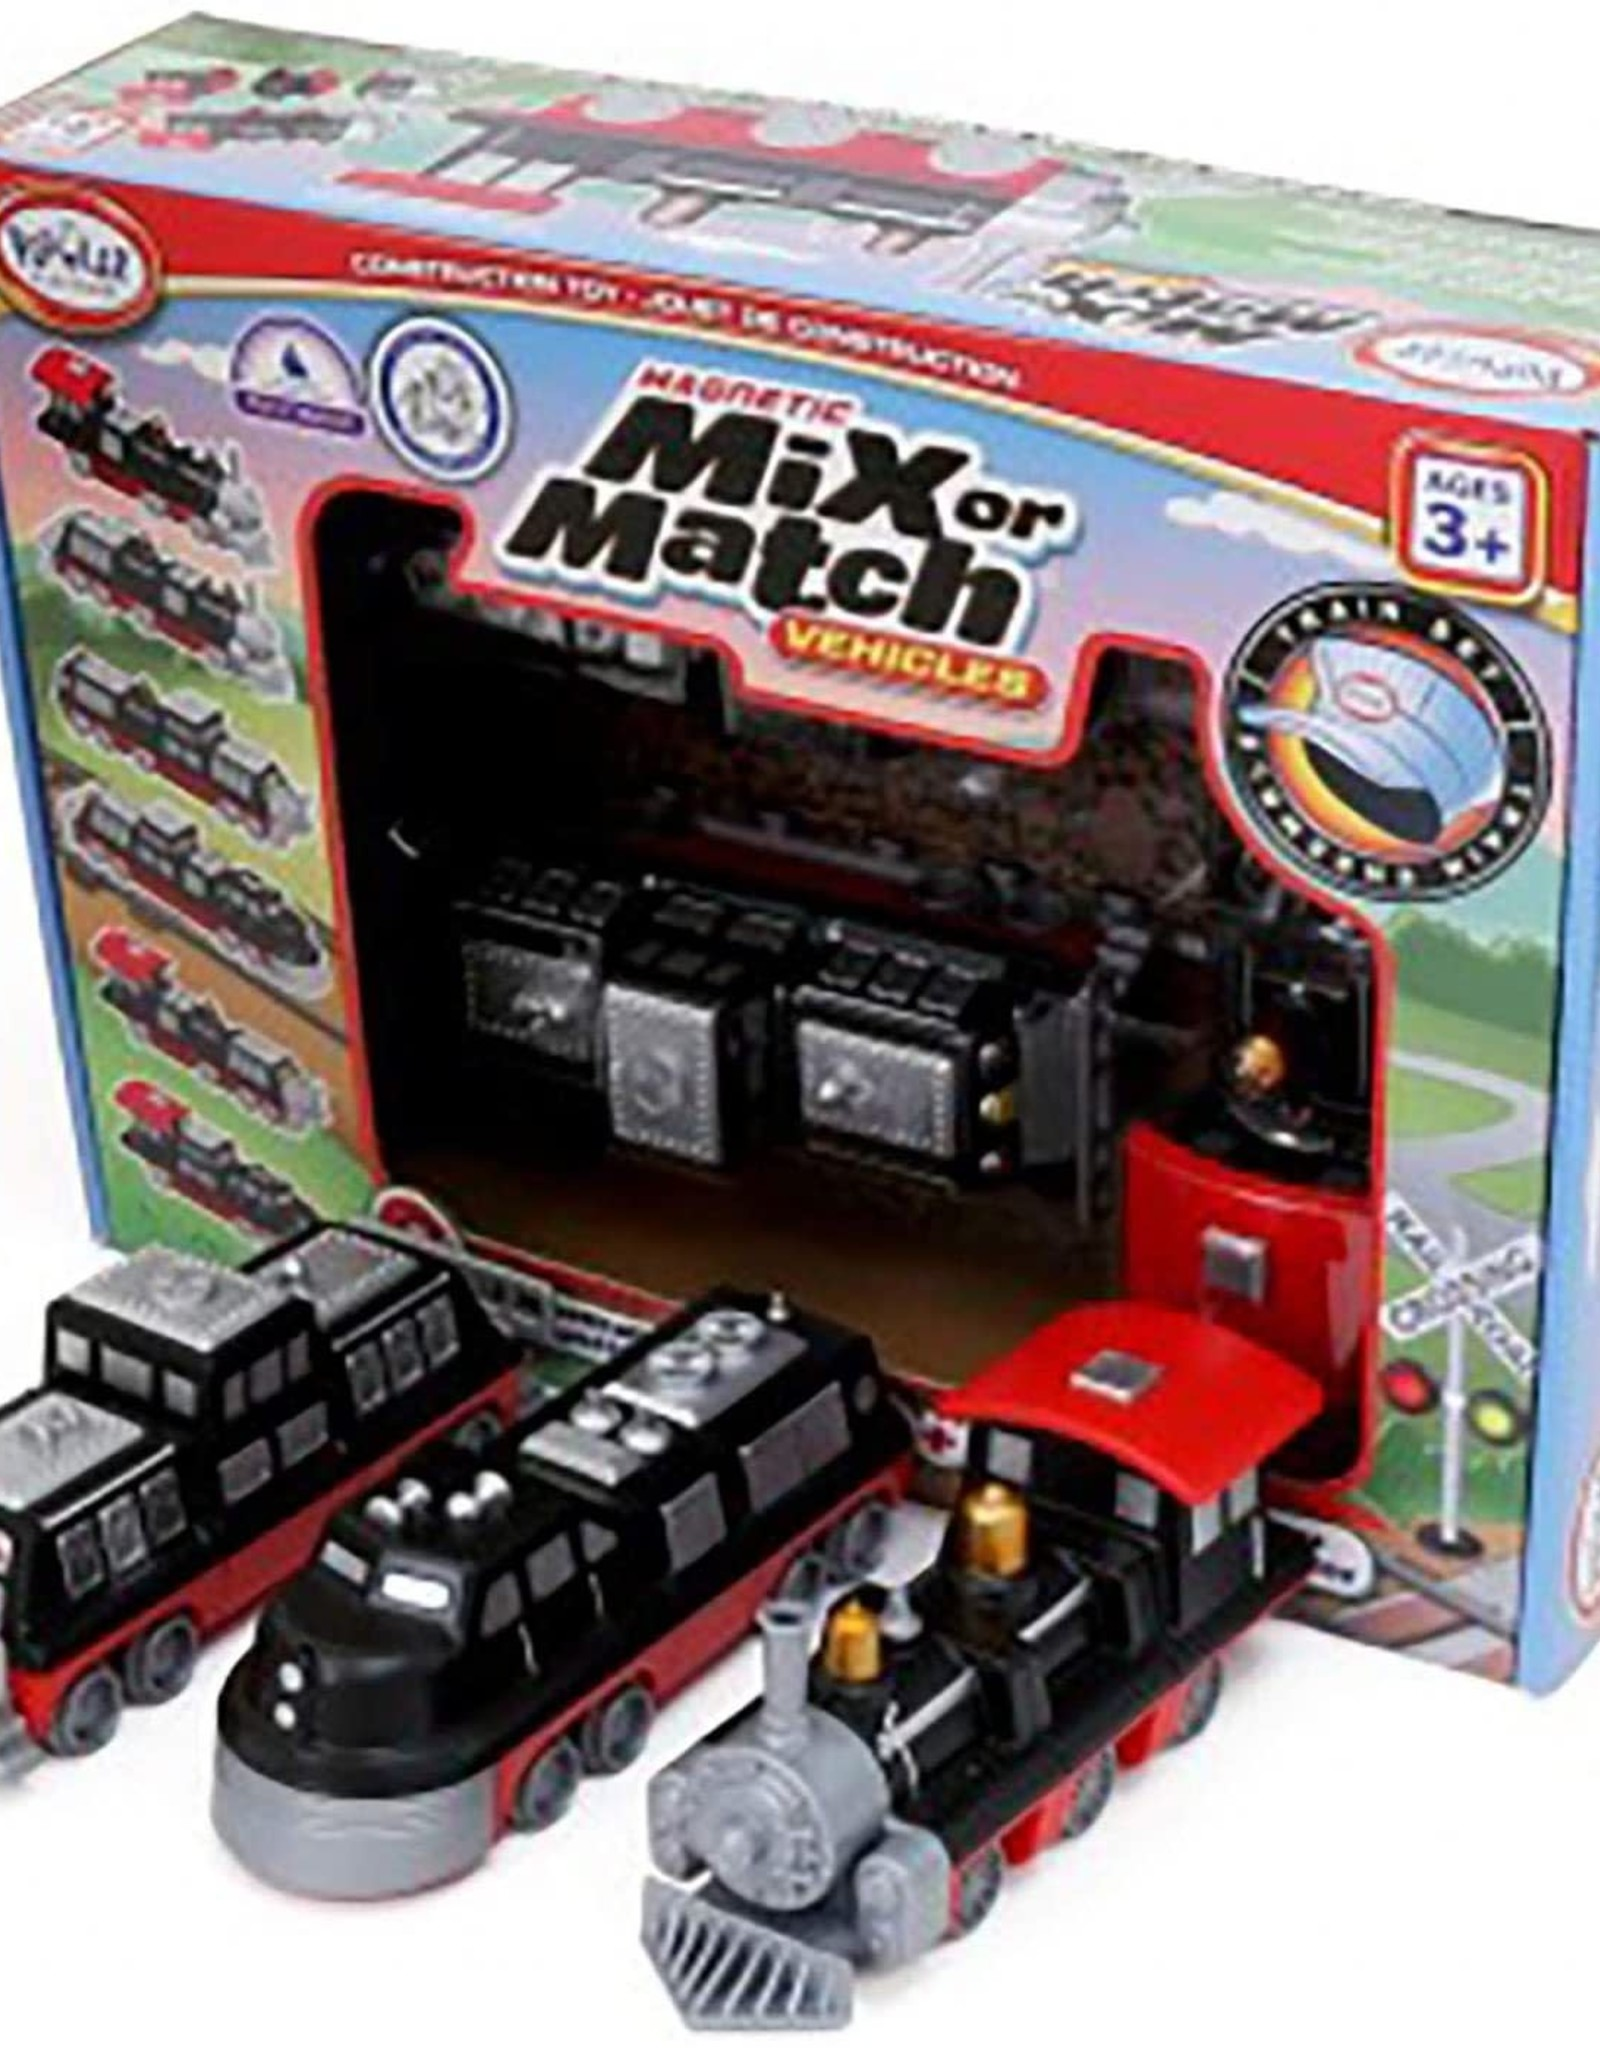 Popular Playthings Mix or Match Vehicles Diesel Train